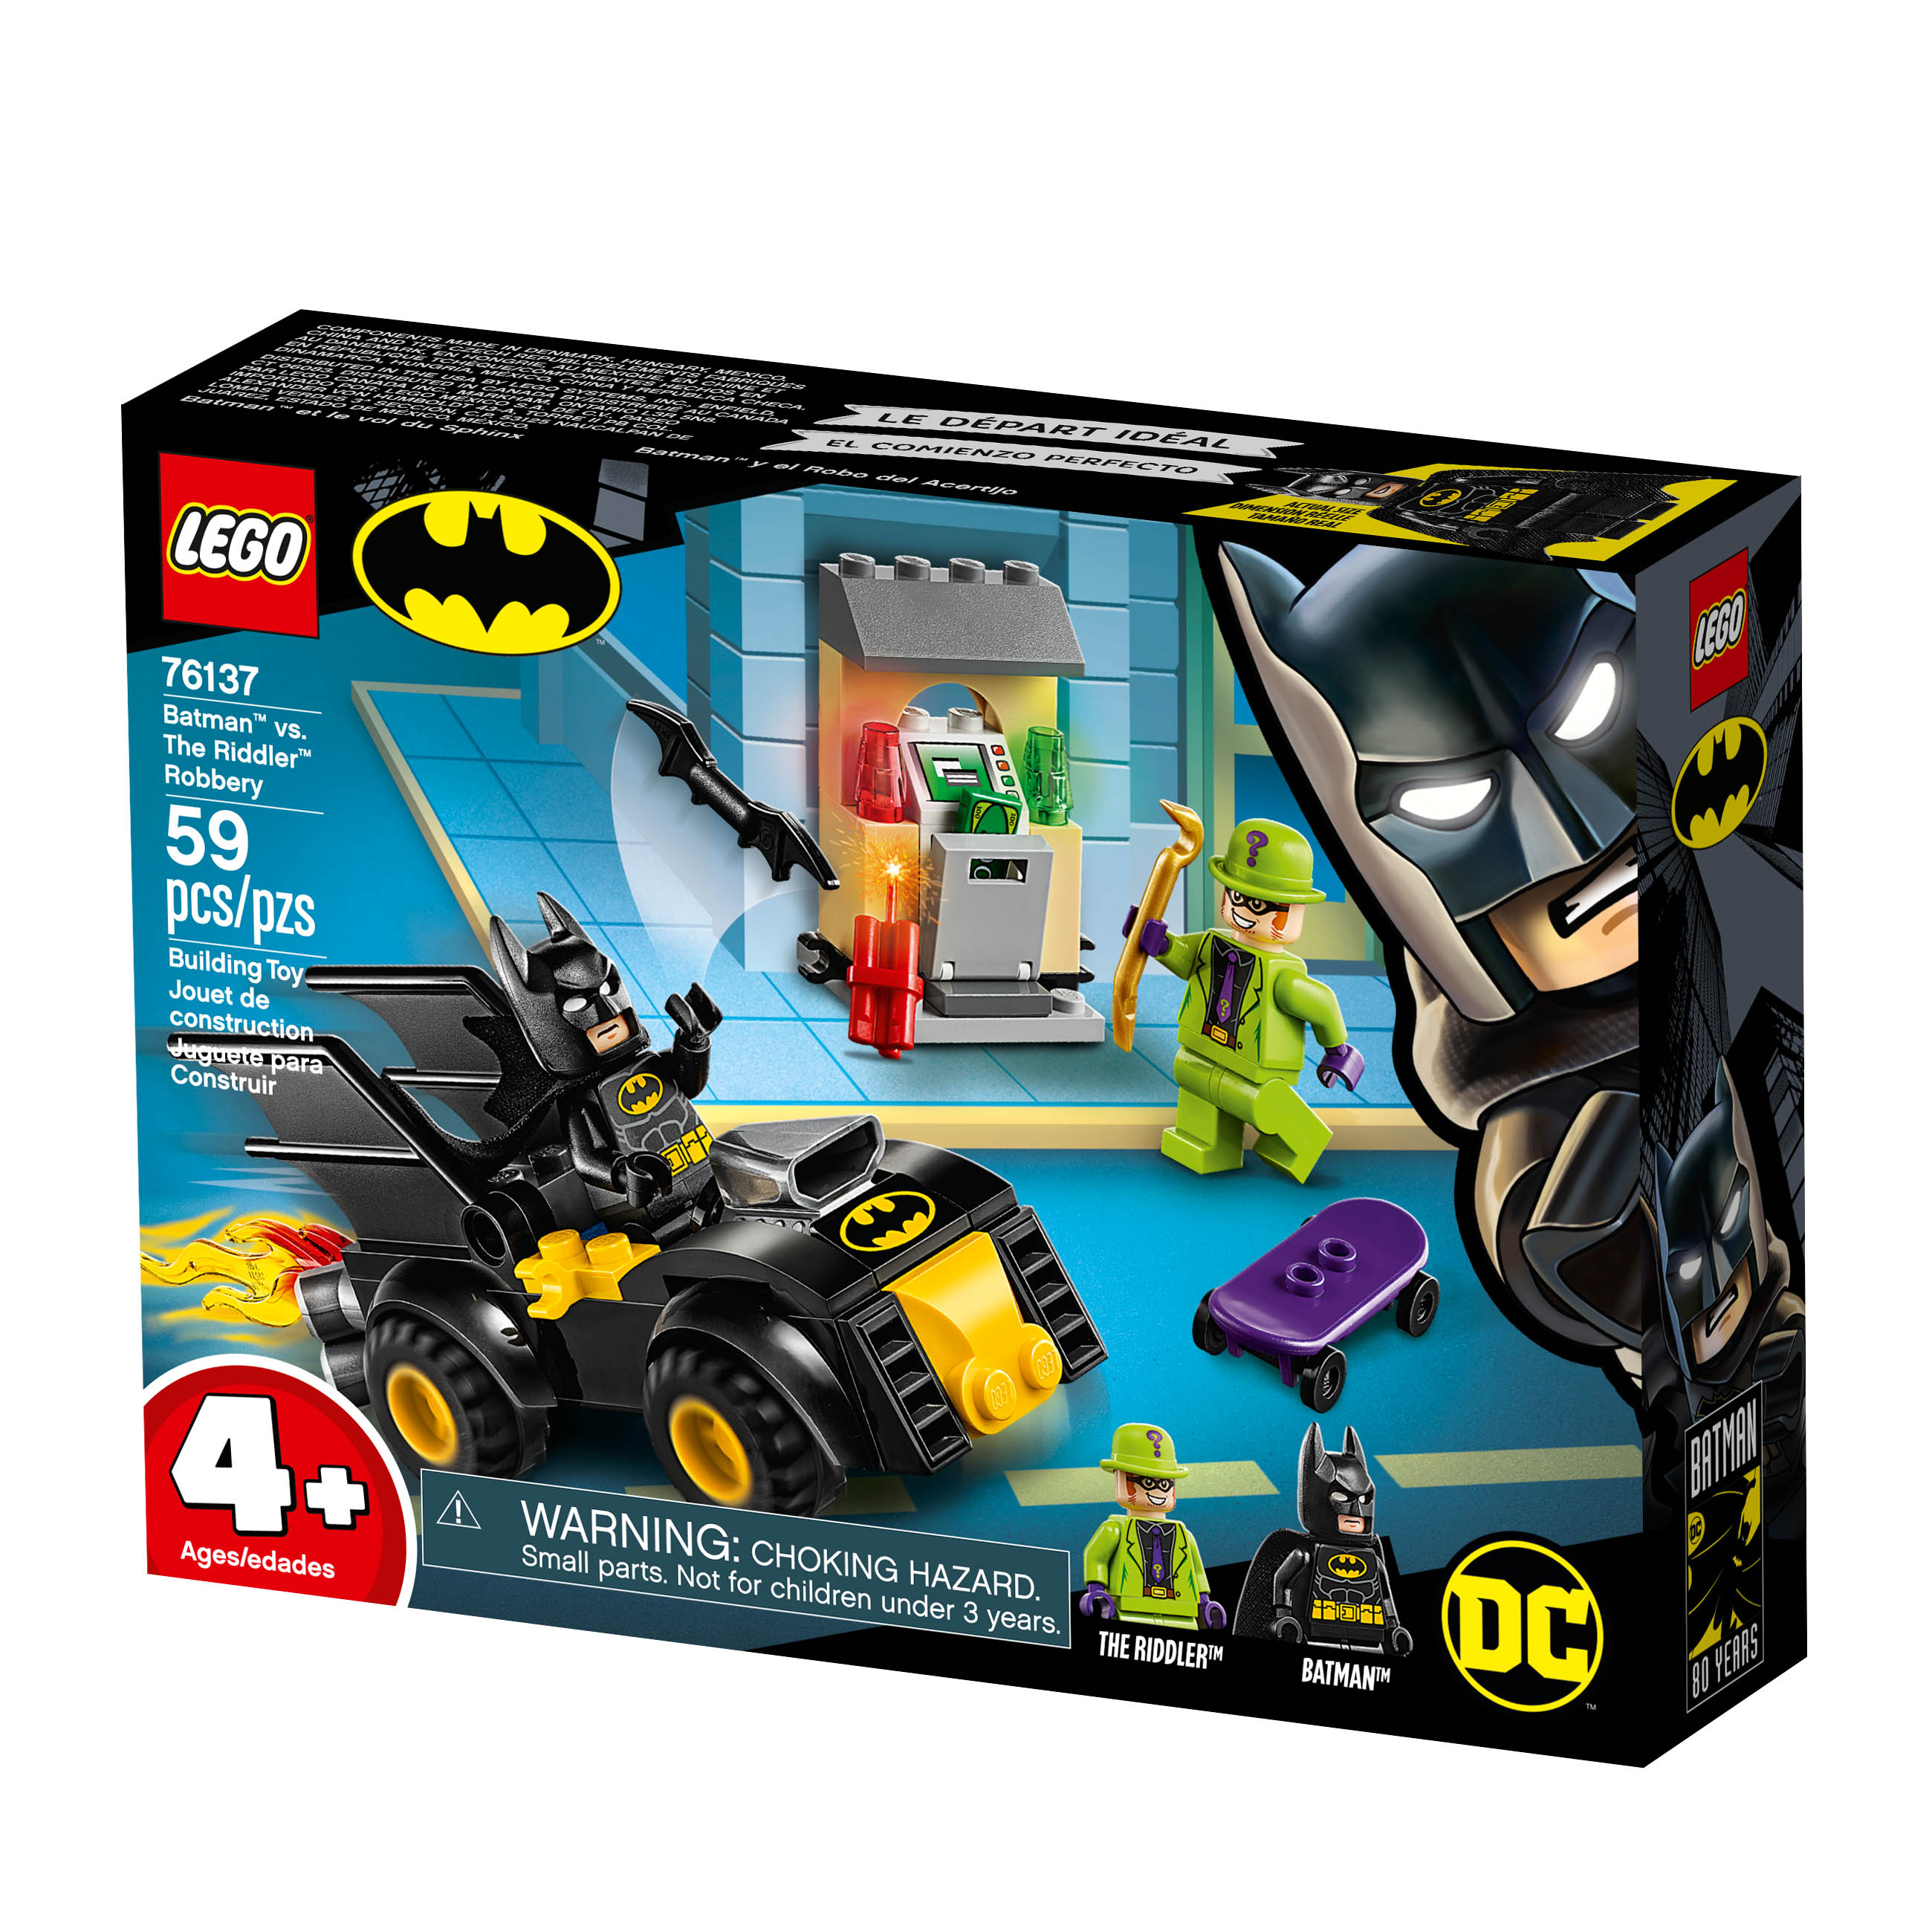 LEGO Celebrates 80 Years of Batman with New Sets - The ...